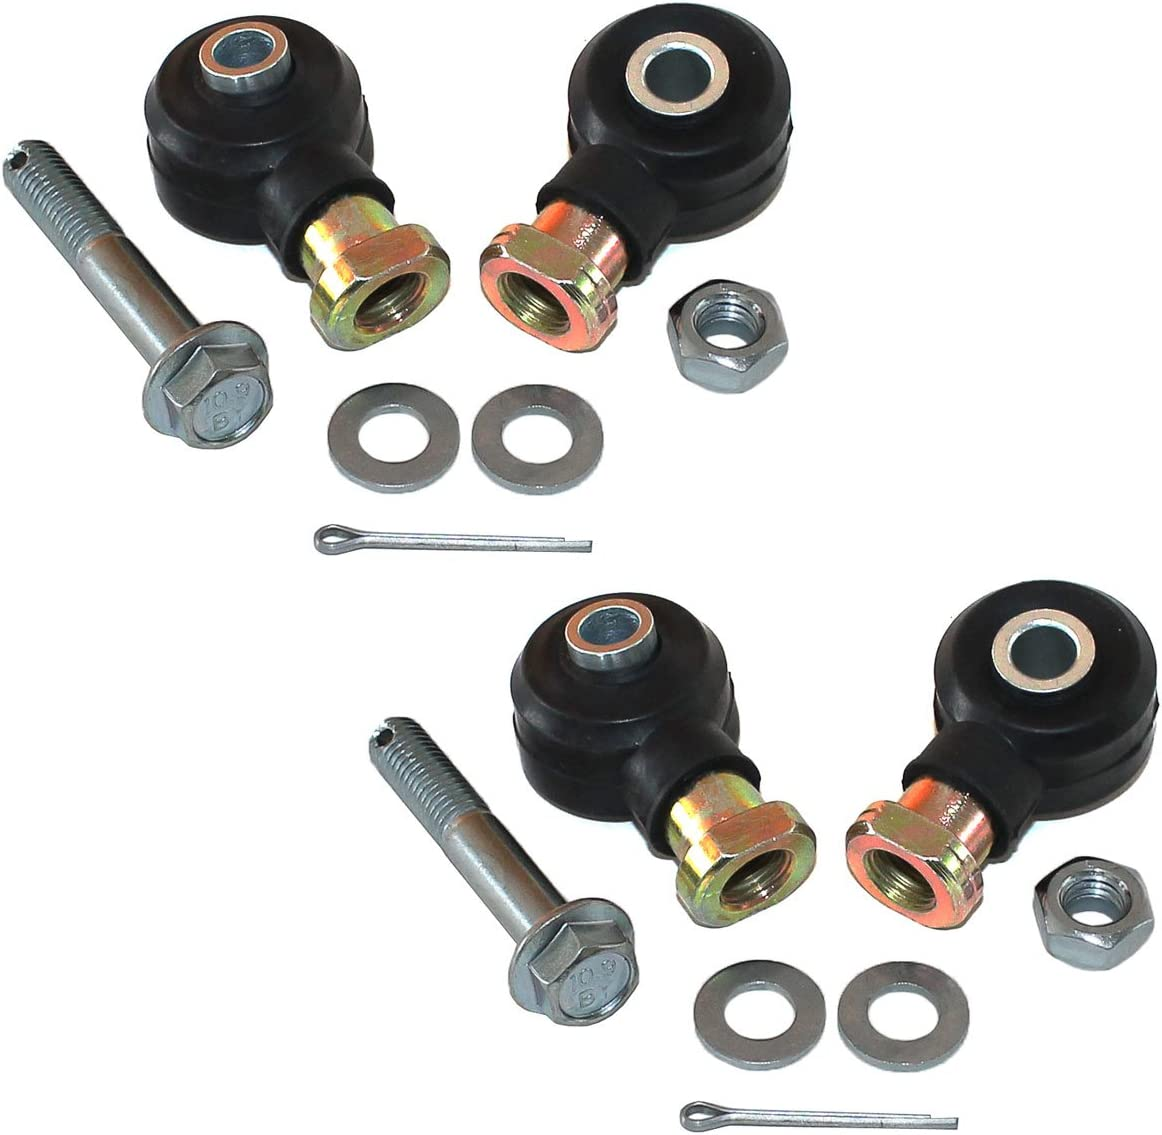 4x4 ATV 1998 Polaris Magnum 425 2x4 Tie Rod End Kit